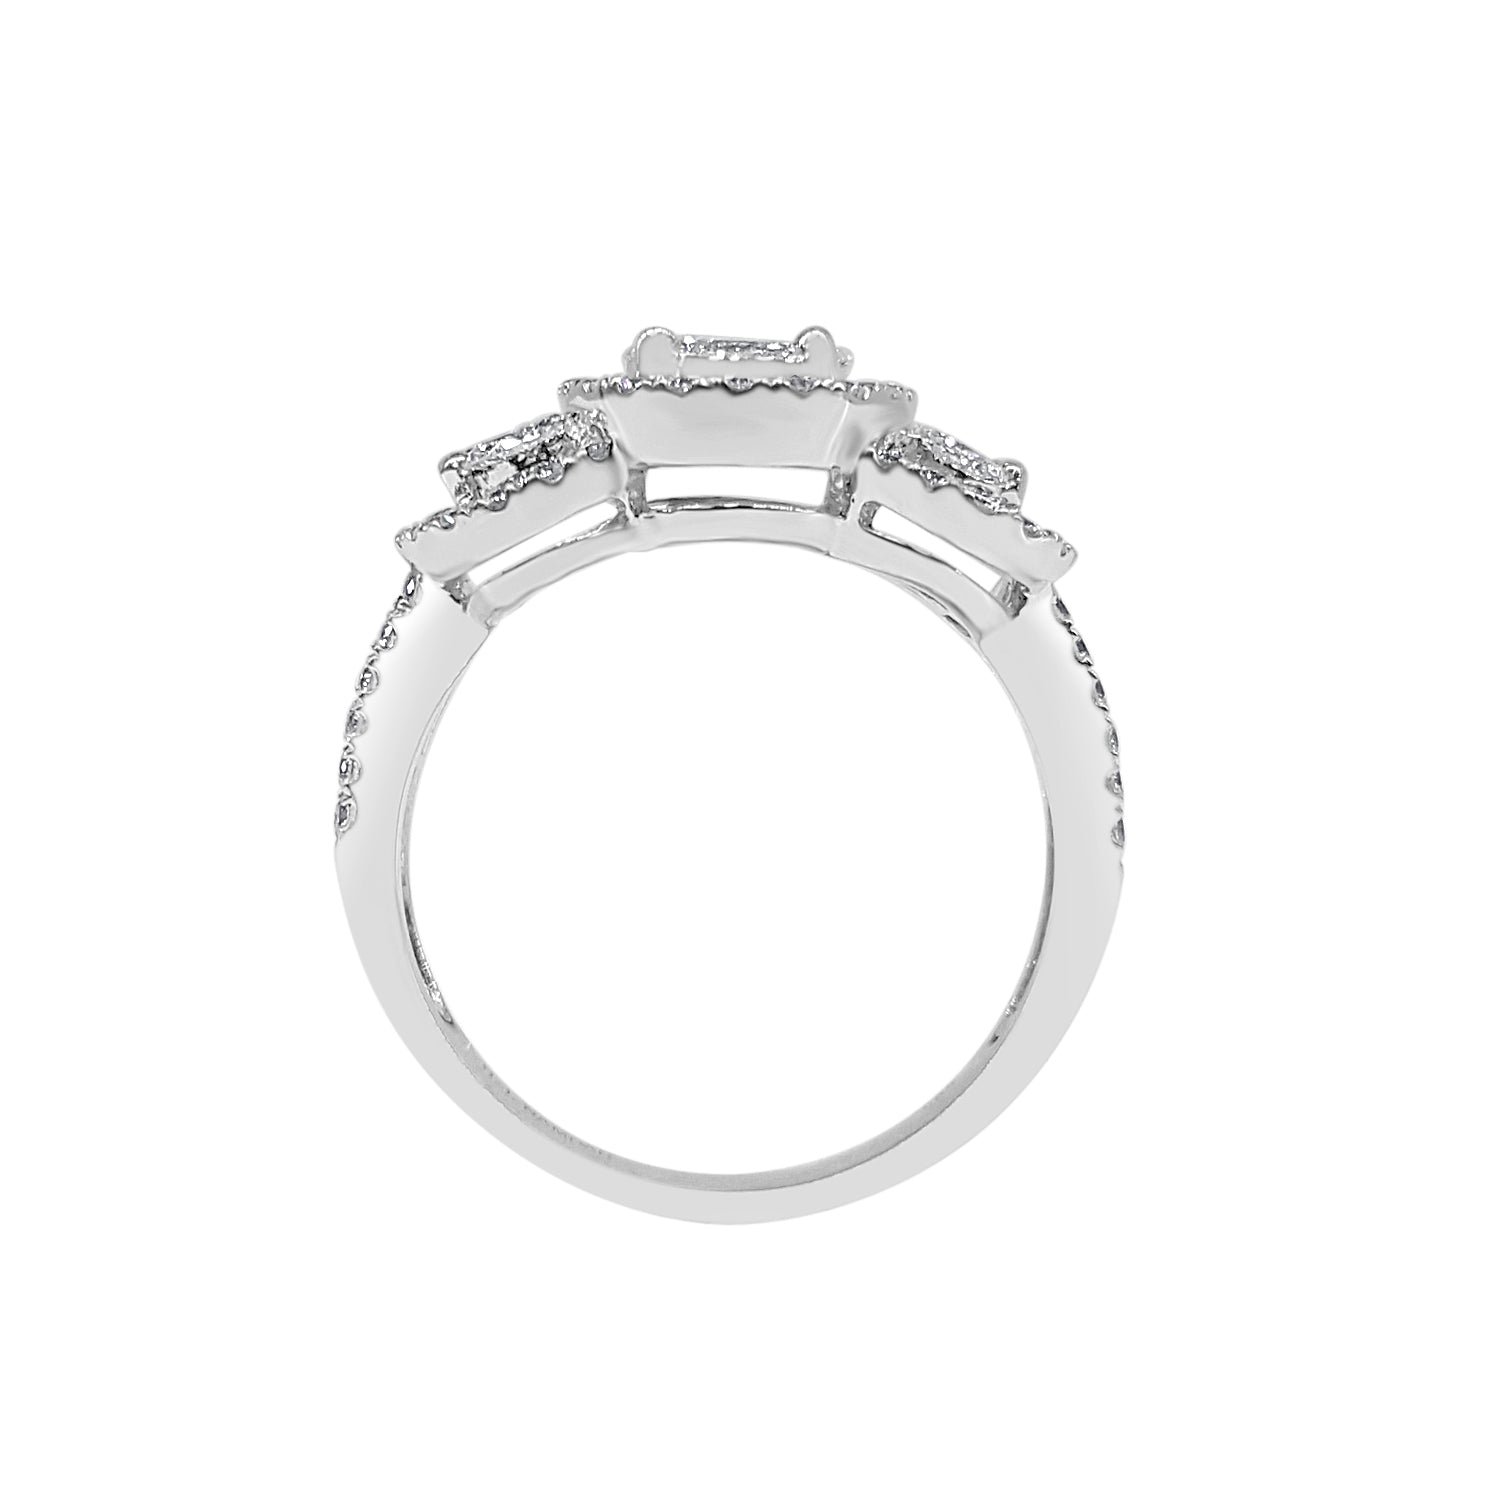 Oval Three Stone Halo Ring With Split Band